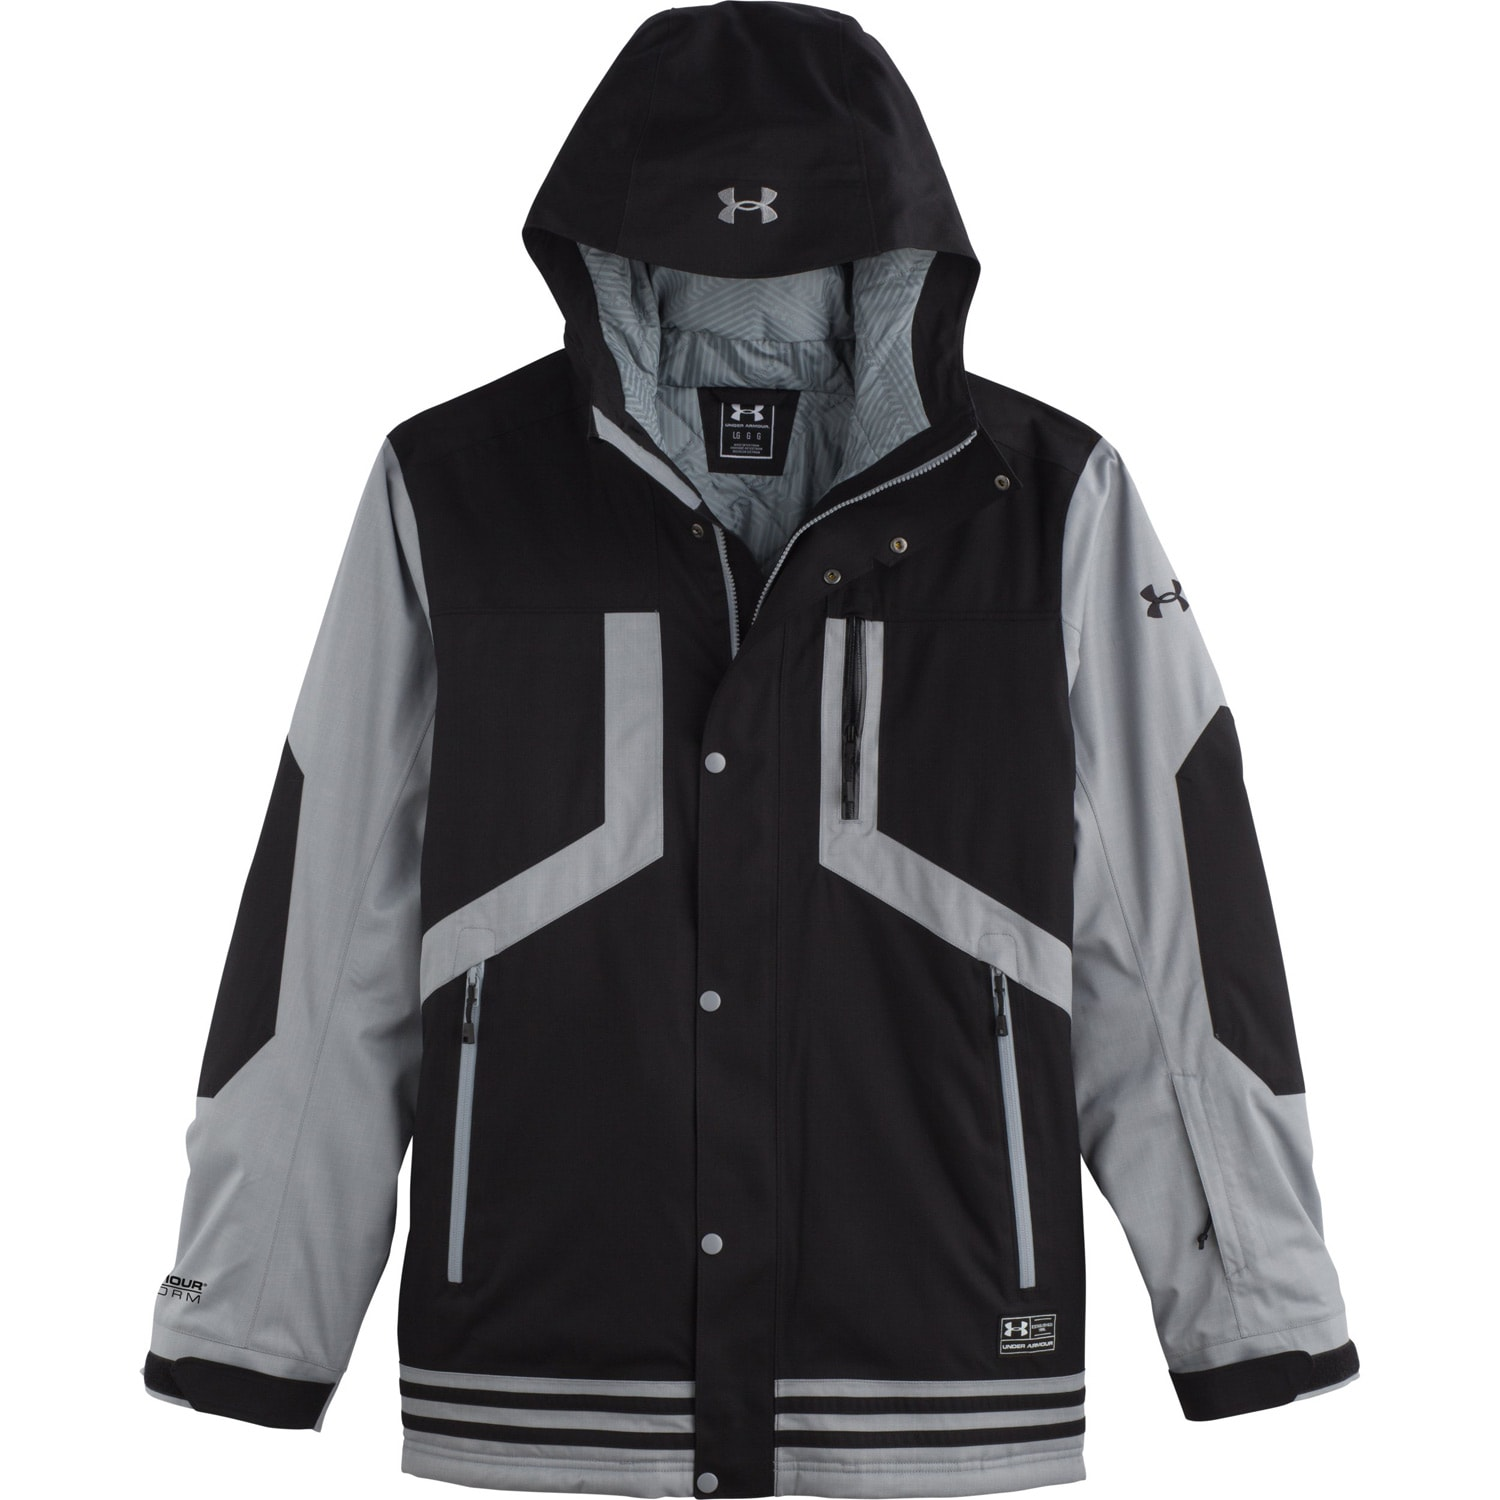 4f7f5aa01 under armour winter coats cheap > OFF40% The Largest Catalog Discounts